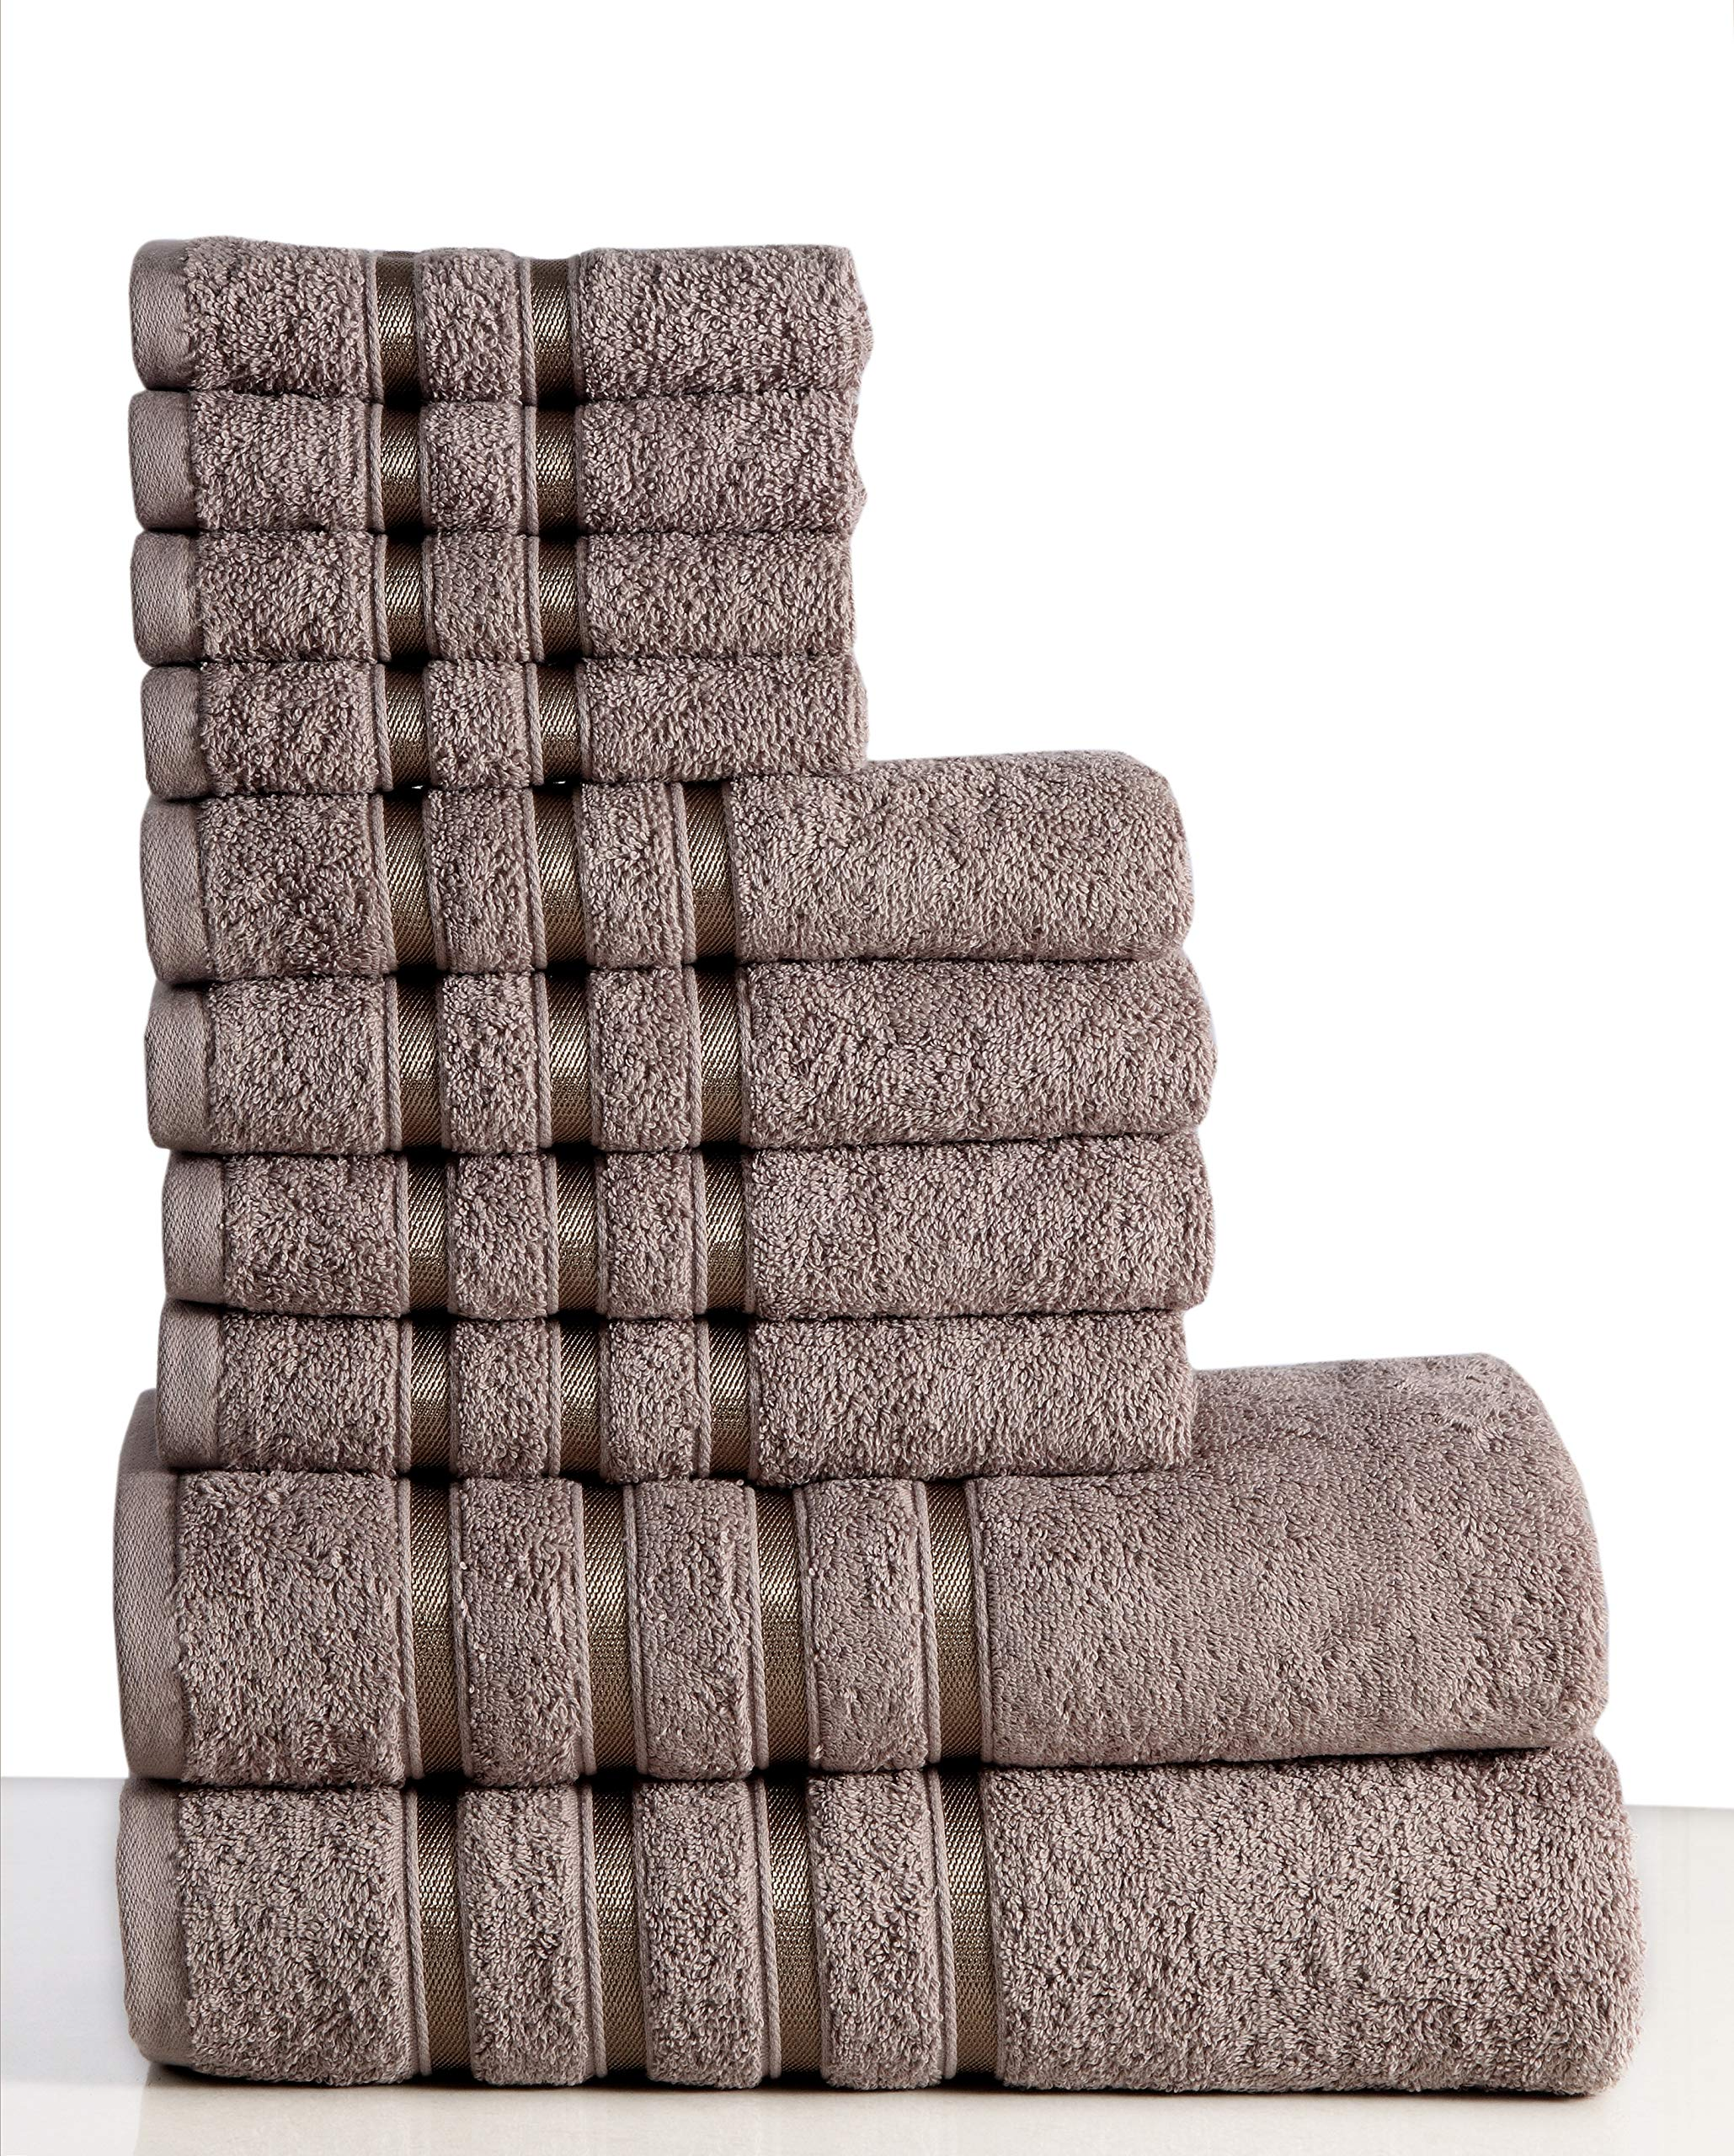 Wicker Park 550 GSM Ultra Soft Luxurious 10-Piece Towel Set (Platinum): 2 Bath Towels, 4 Hand Towels, 4 Washcloths, Long-Staple Combed Cotton, Spa Hotel Quality, Super Absorbent, Machine Washable